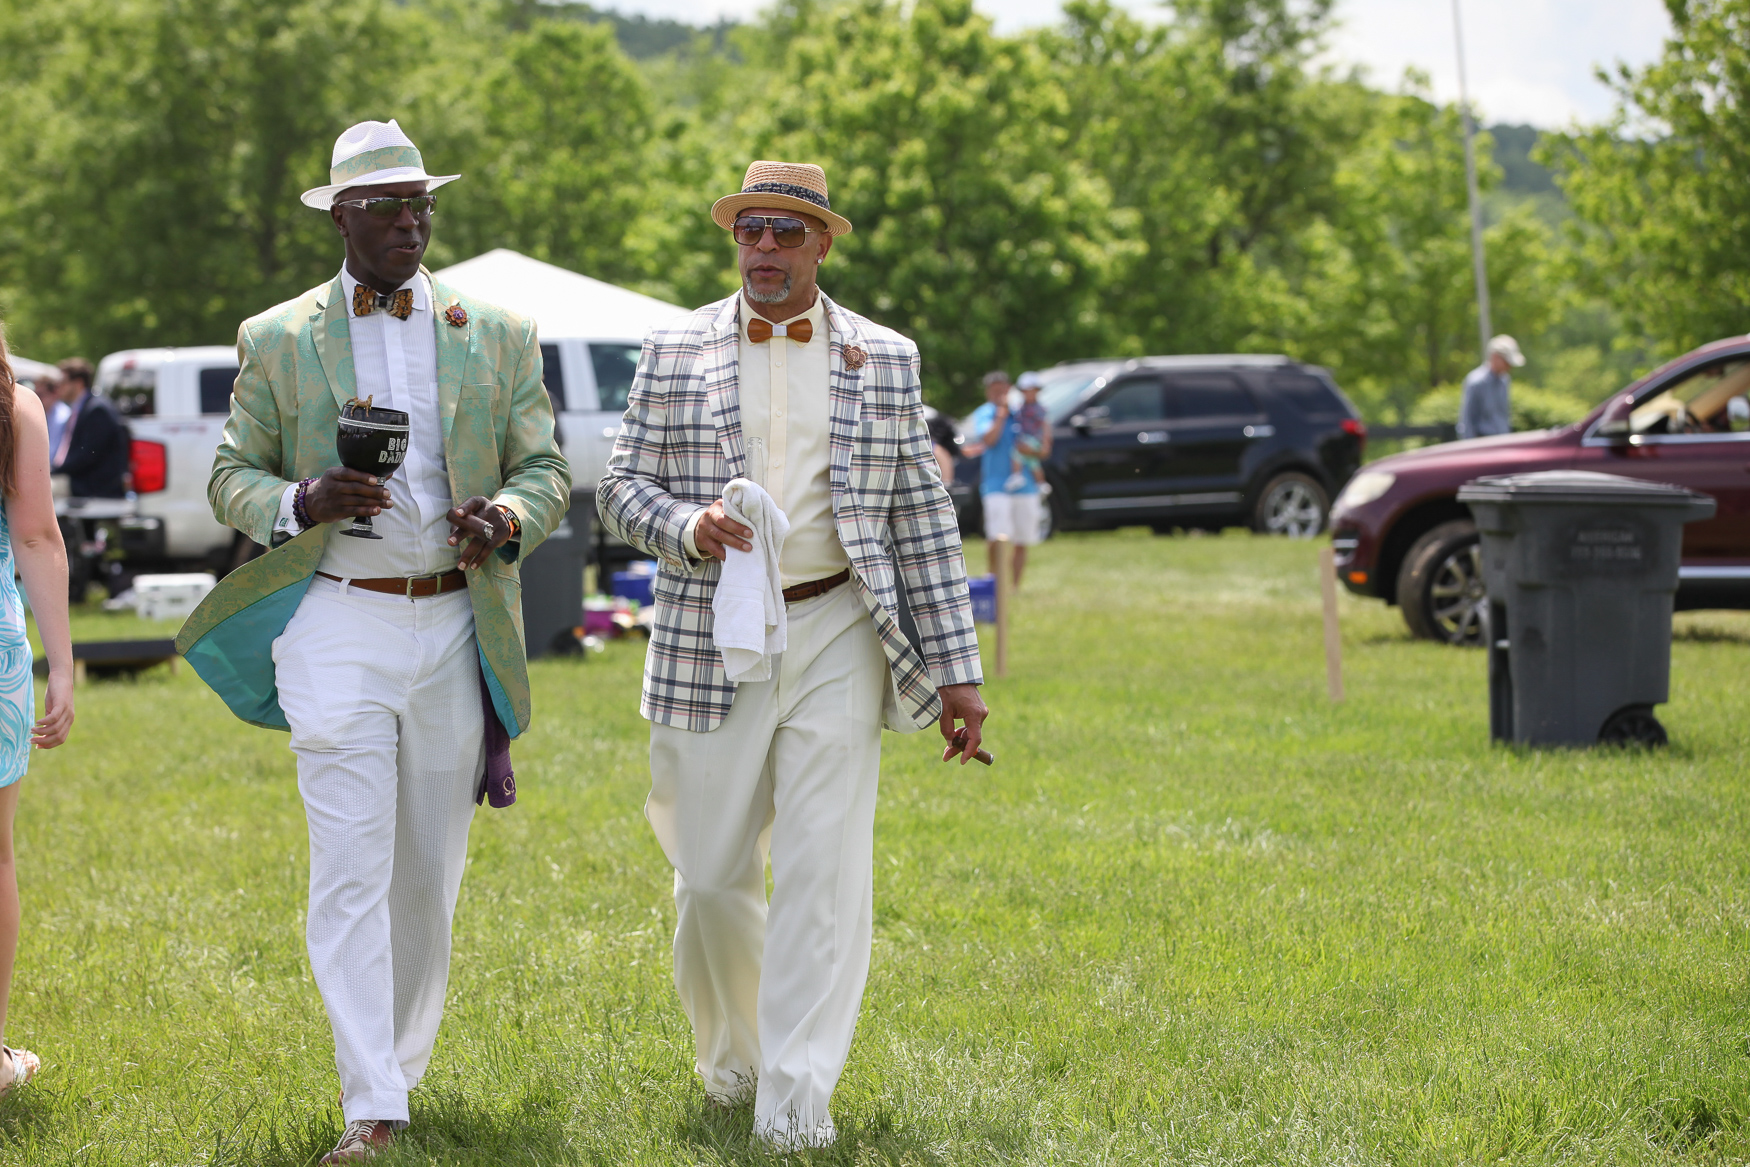 This is a classic derby look for men.{ } (Amanda Andrade-Rhoades/DC Refined)